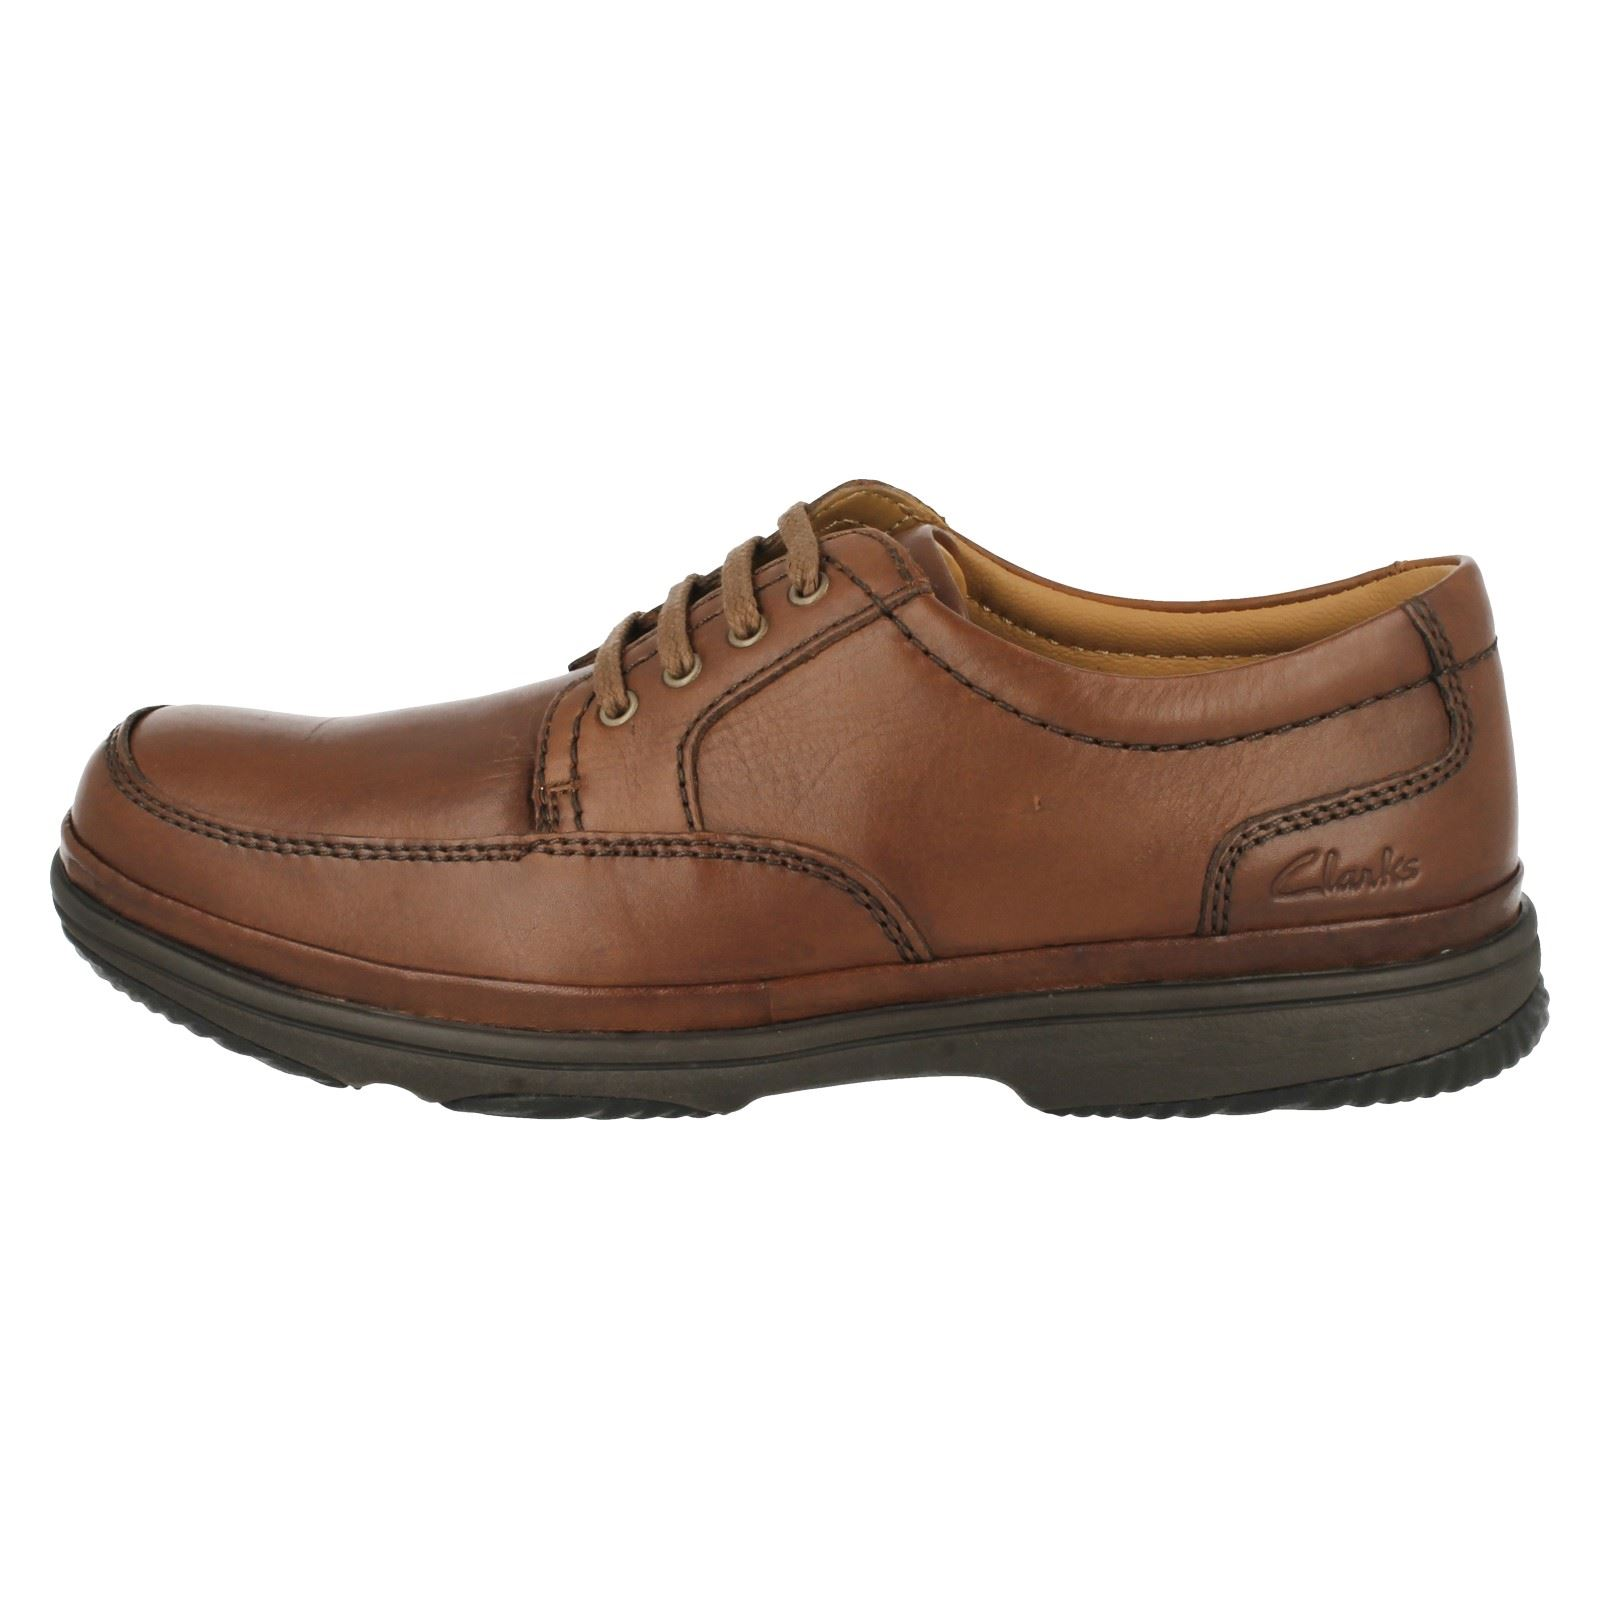 Mens Clarks Up Flexlight Wide Fitting Lace Up Clarks Shoe Swift Mile ea328e